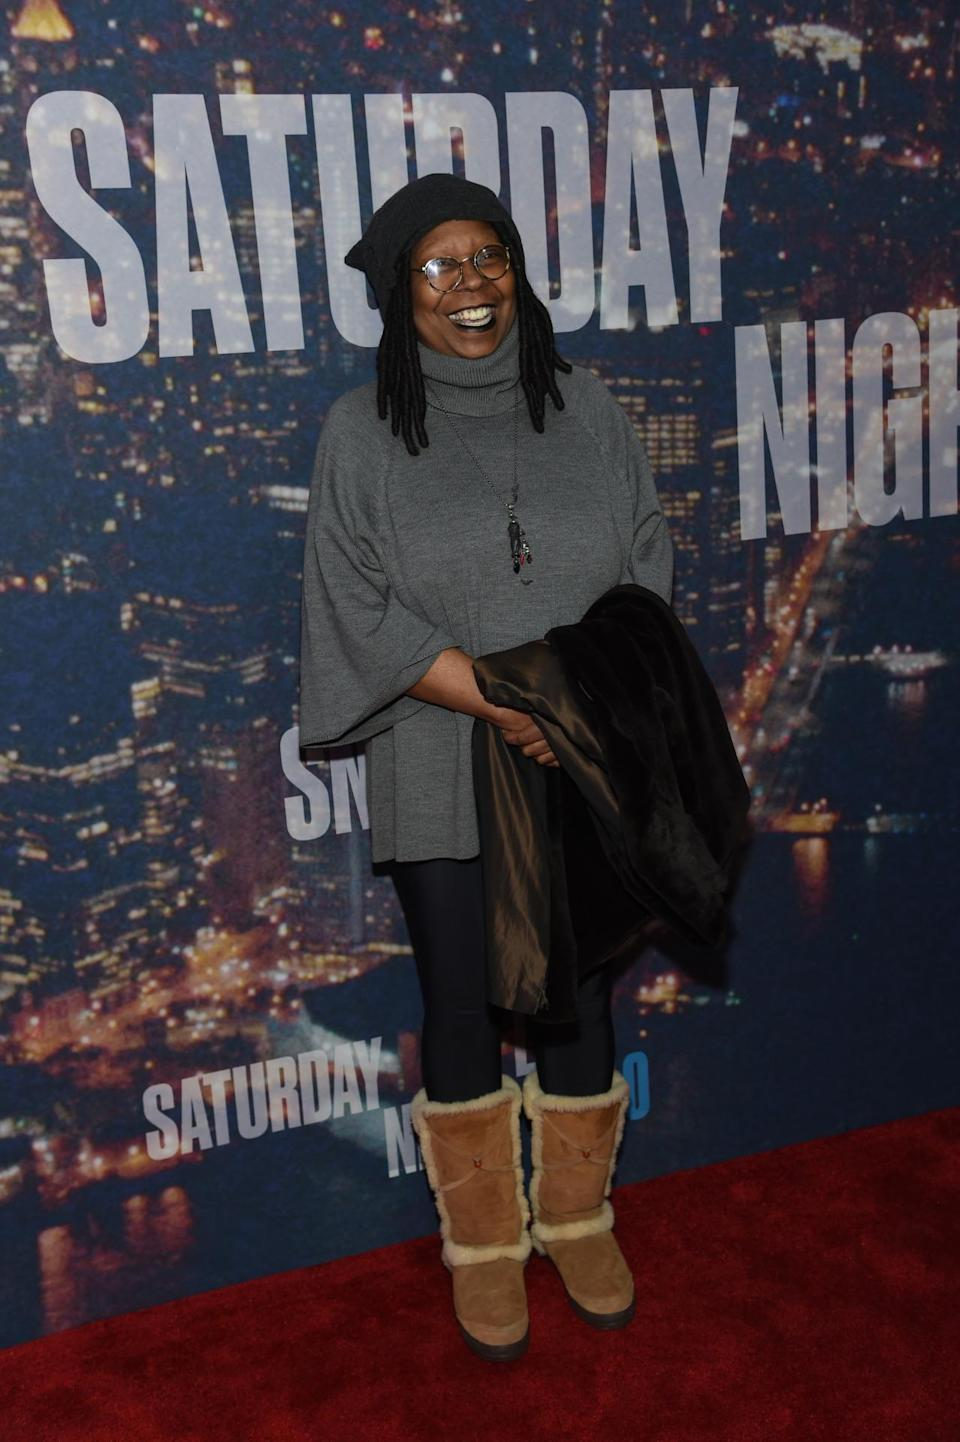 While most of the other guests wore outfits in accordance with the momentous occasion, Whoopi Goldberg opted for comfort in a sweater, hat, and Ugg boots.